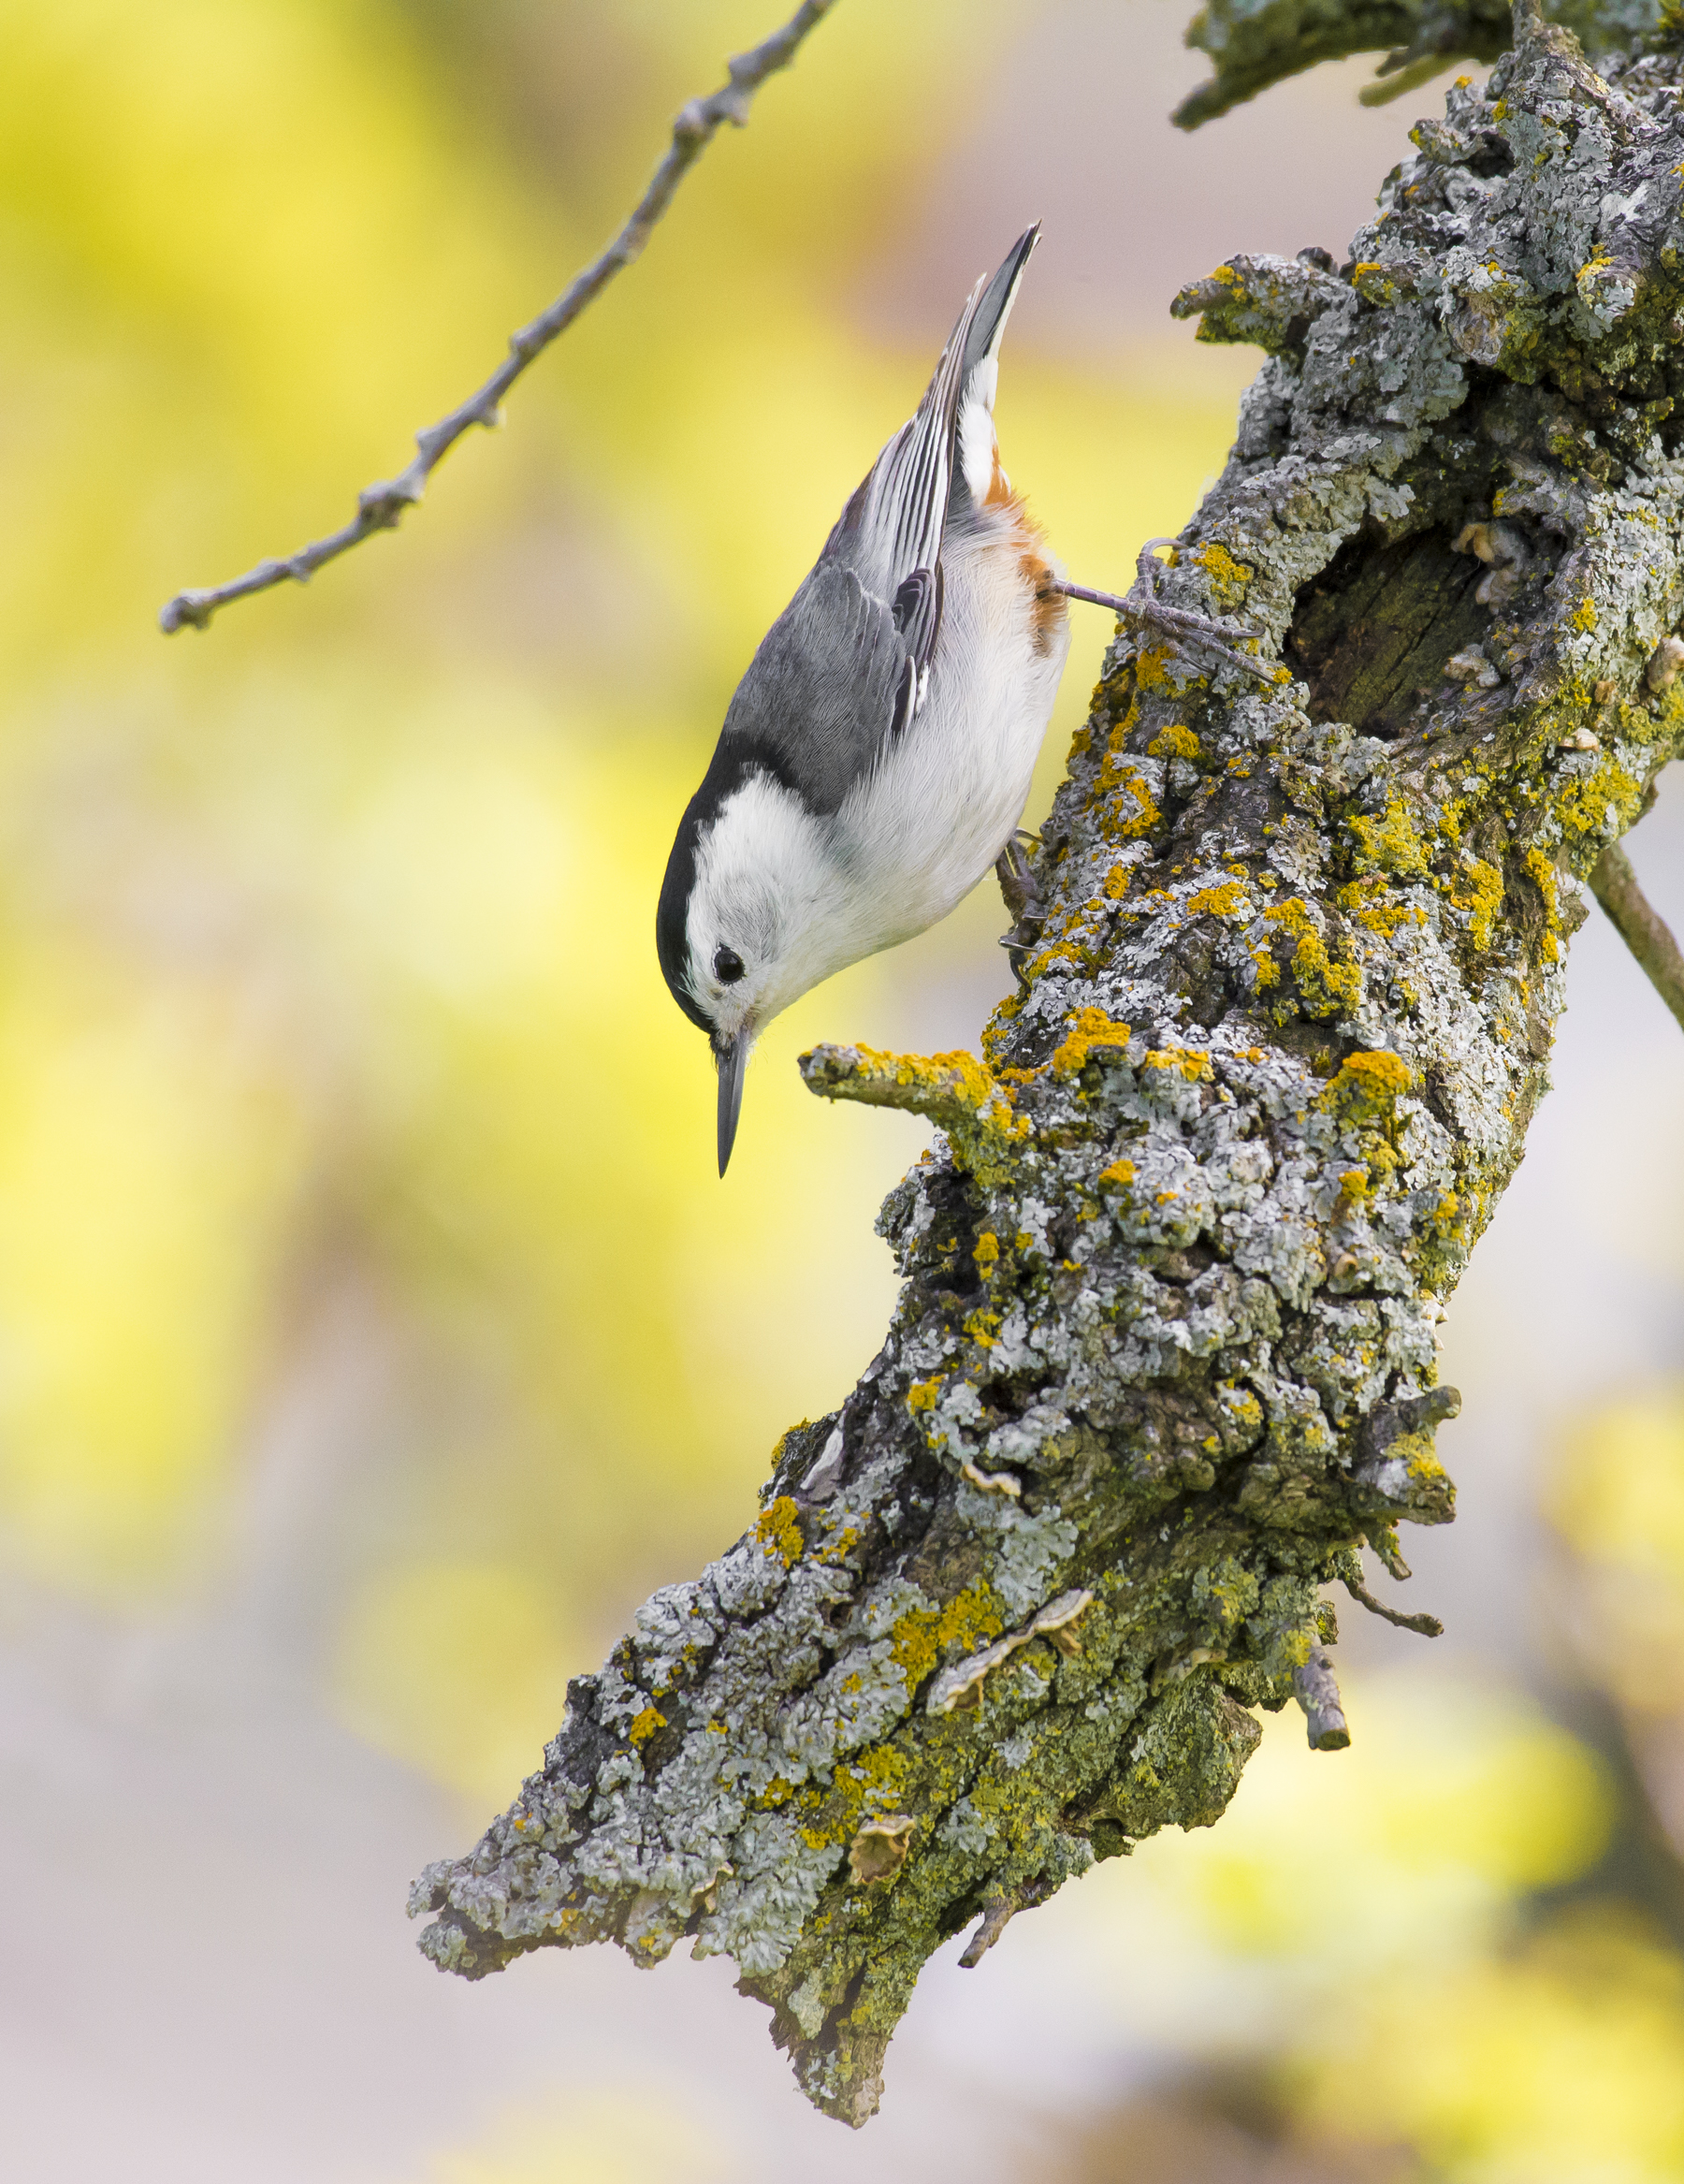 A white-breasted nuthatch ( Sitta carolinensis ) searches for insects in Martinez, California